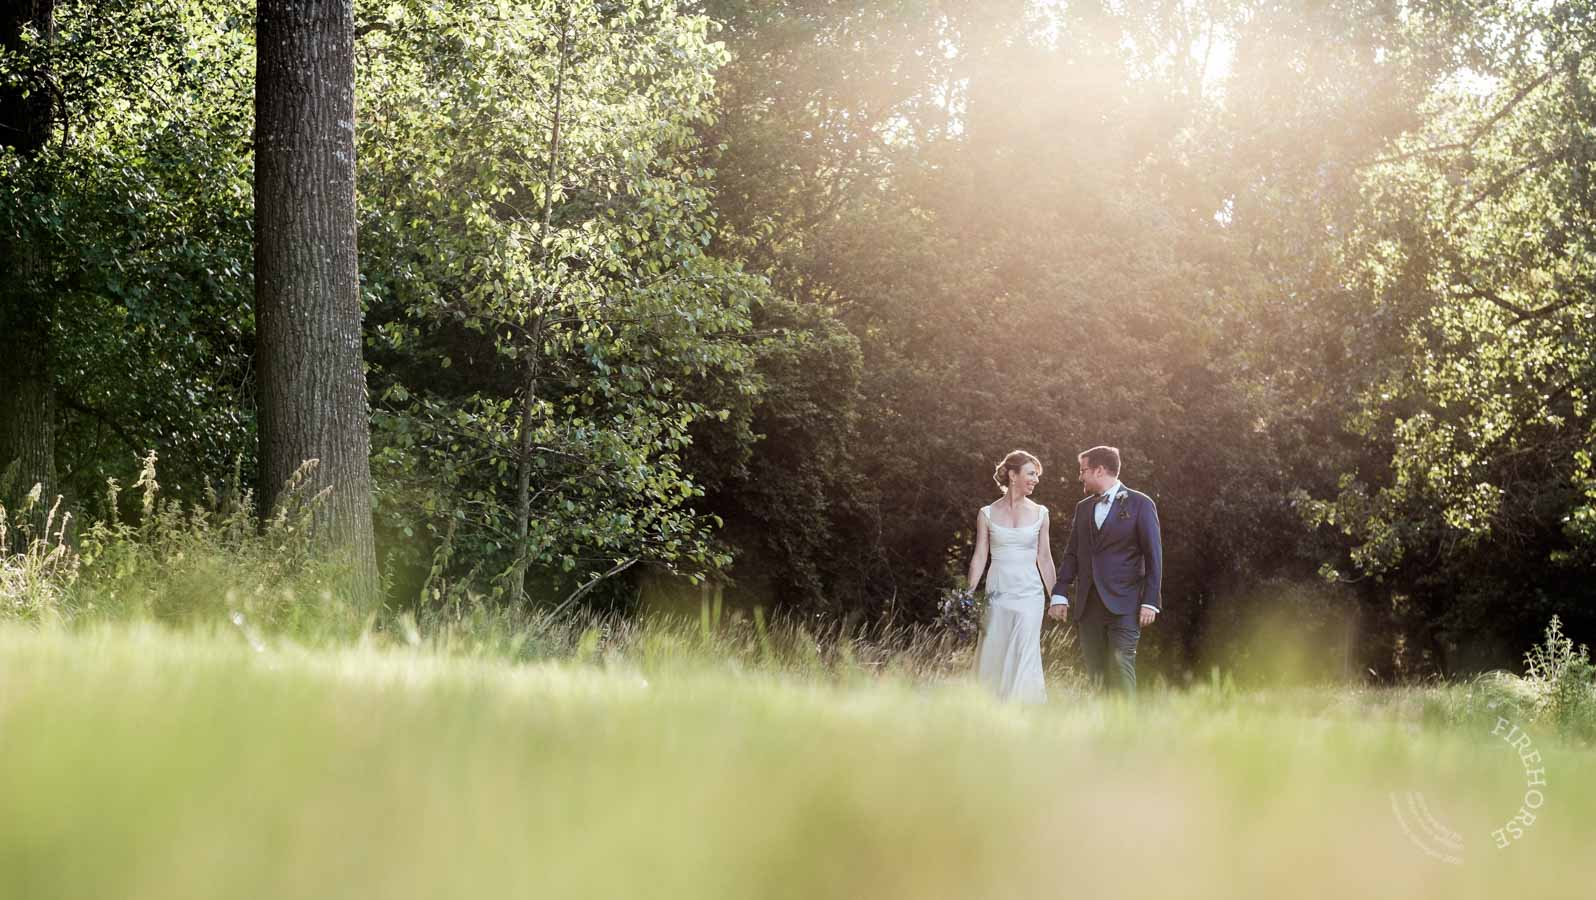 Lot-et-Garonne-Wedding-Photography-298